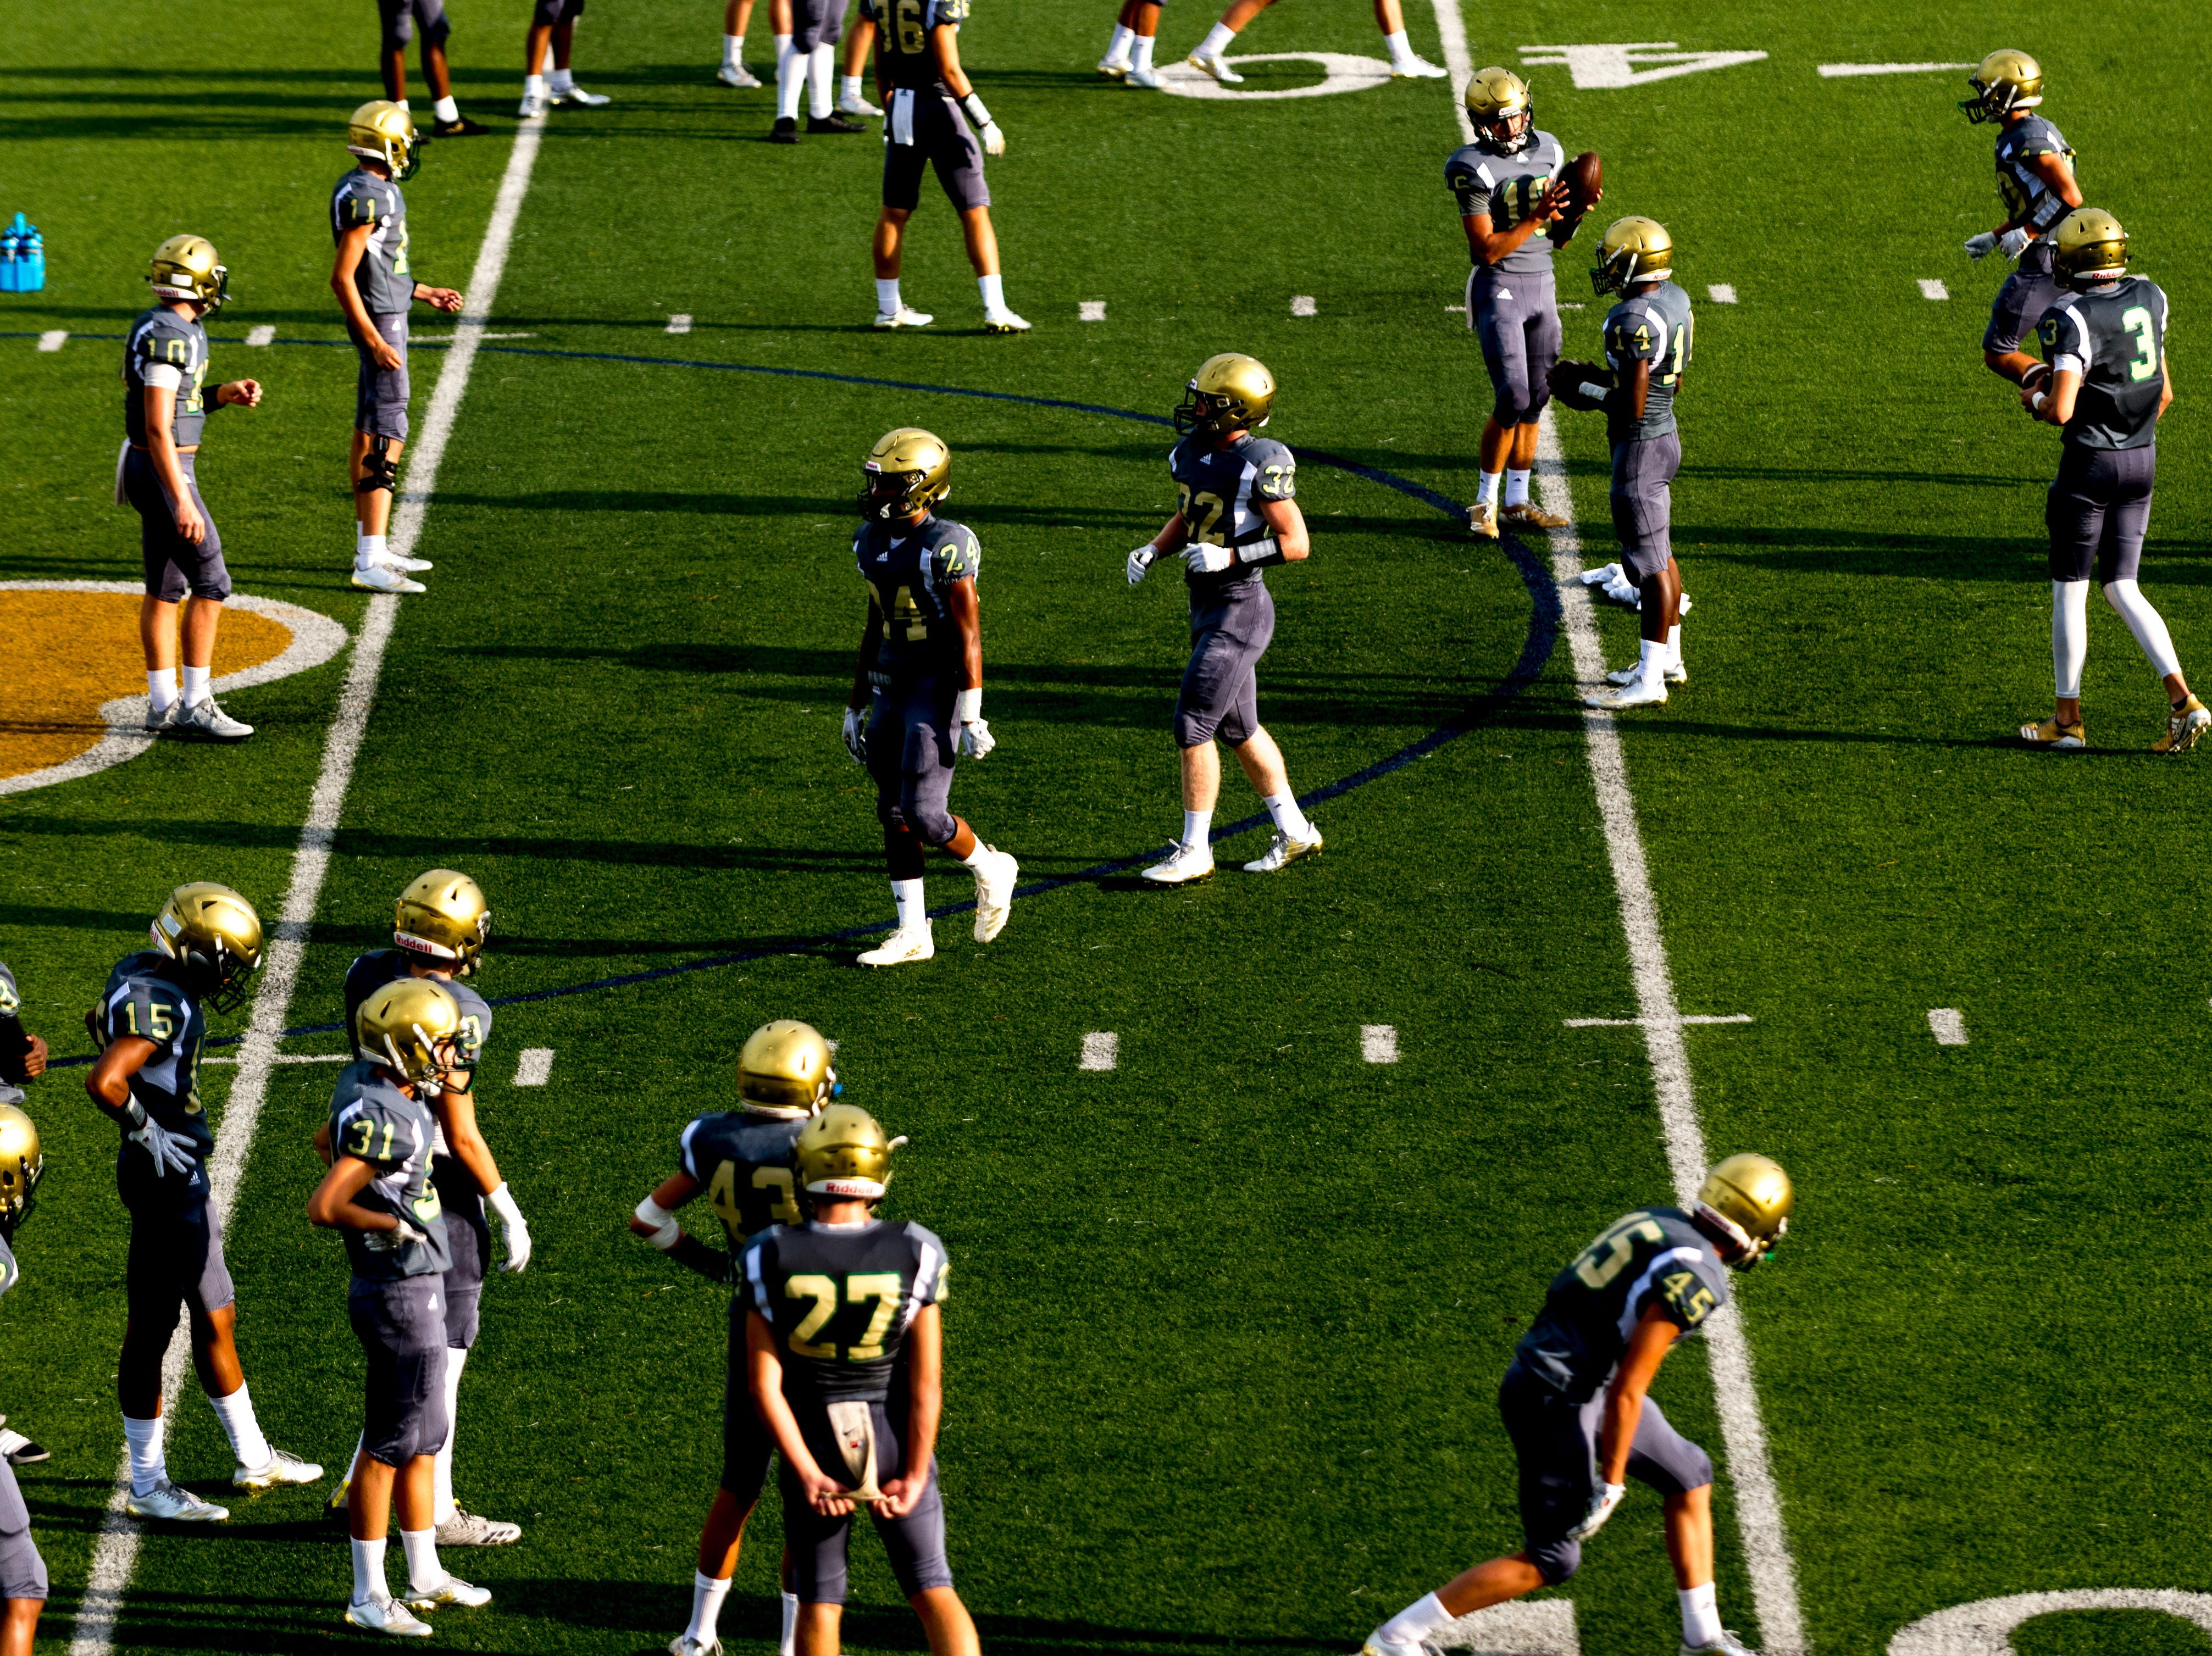 Catholic warms up during a football game between Maryville and Catholic at Catholic High School in Knoxville, Tennessee on Friday, August 17, 2018.